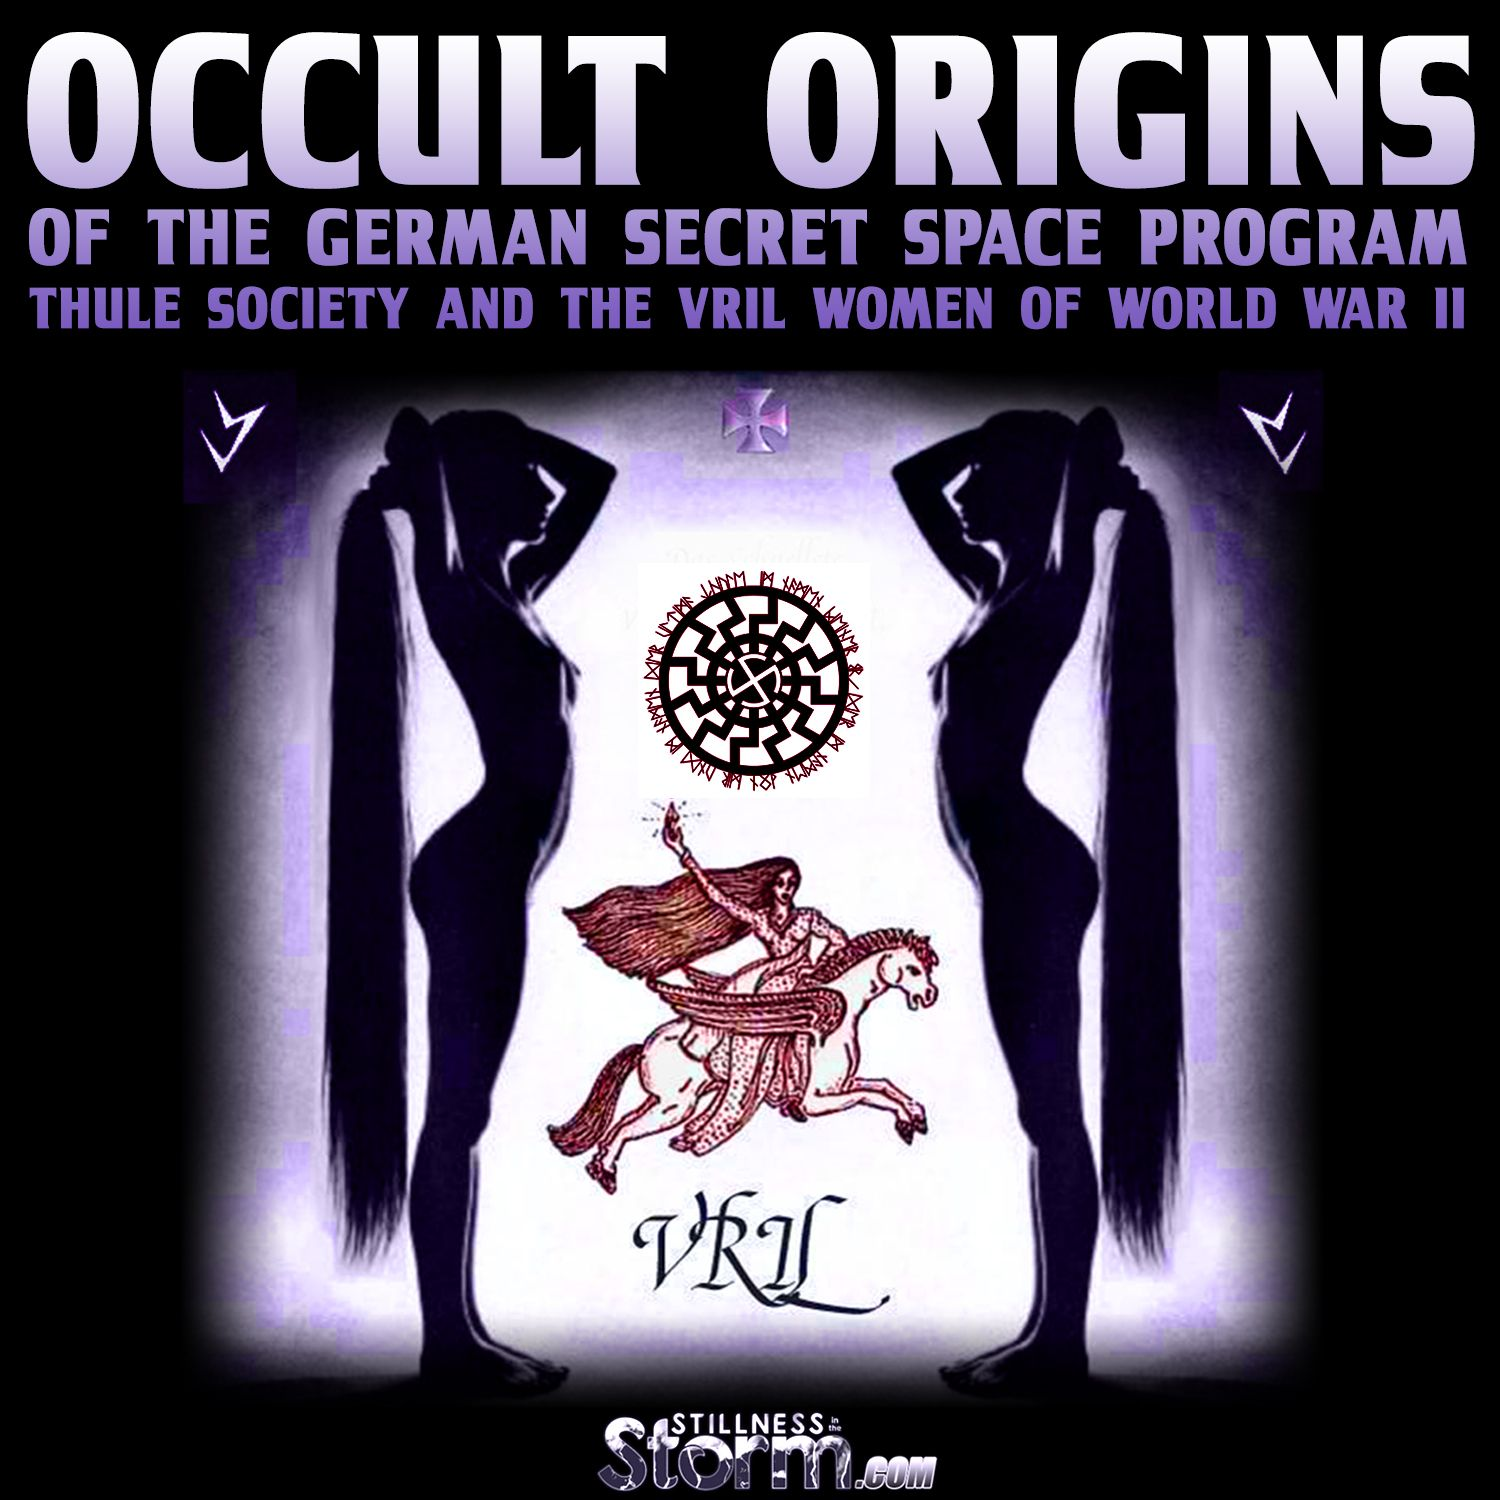 Occult Paranormal: Occult Origins Of The German Secret Space Program, Thule